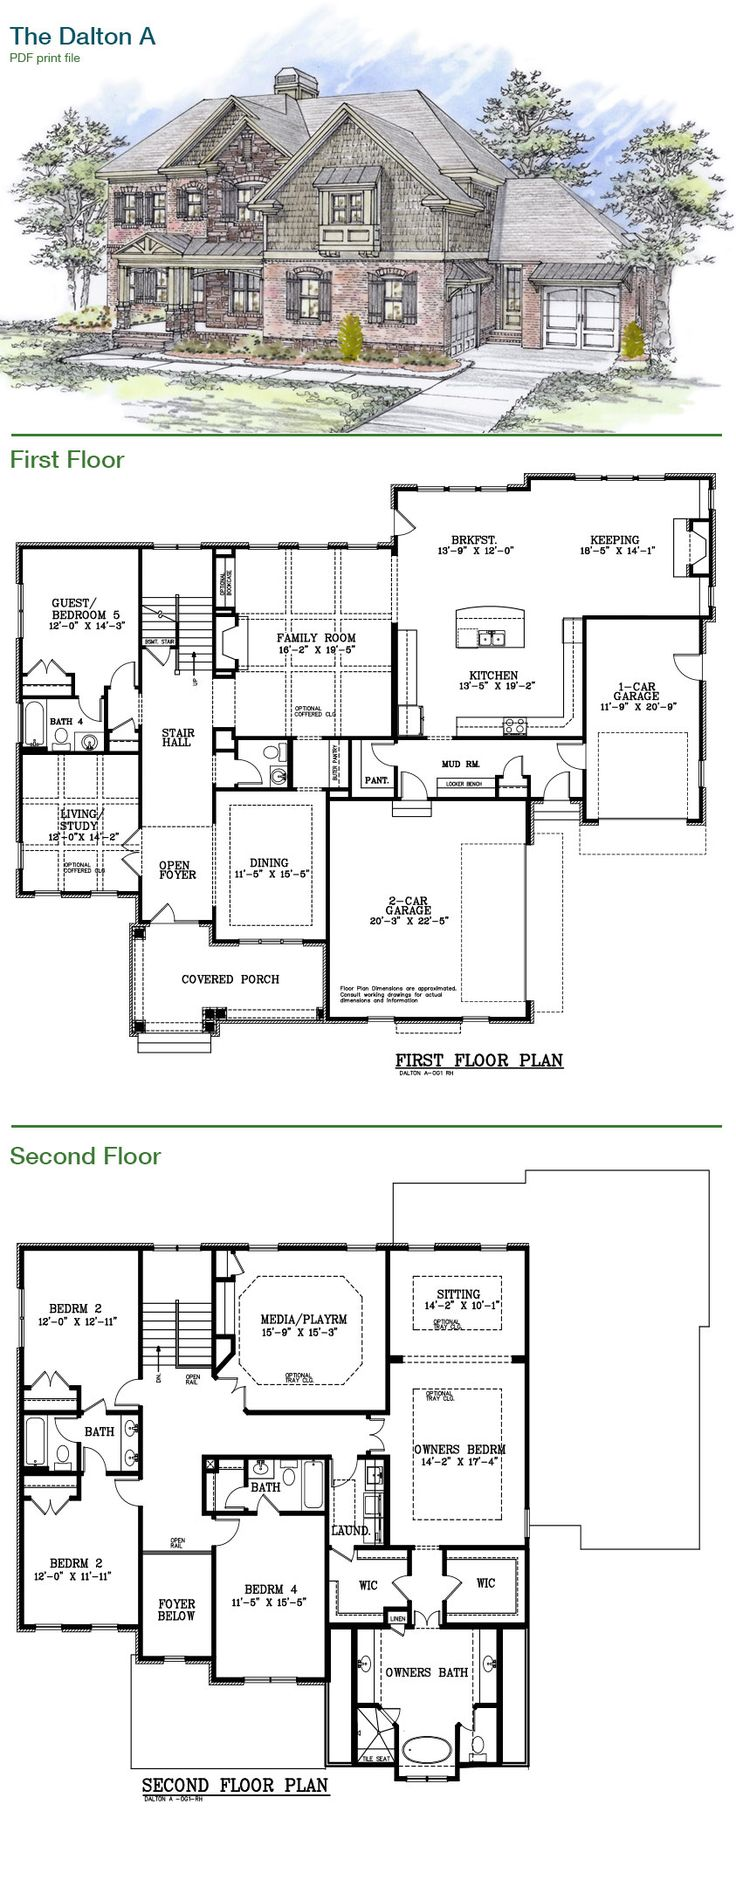 553 Best Images About Home Architecture On Pinterest 2nd Floor House Plans And Southern Living House Plans